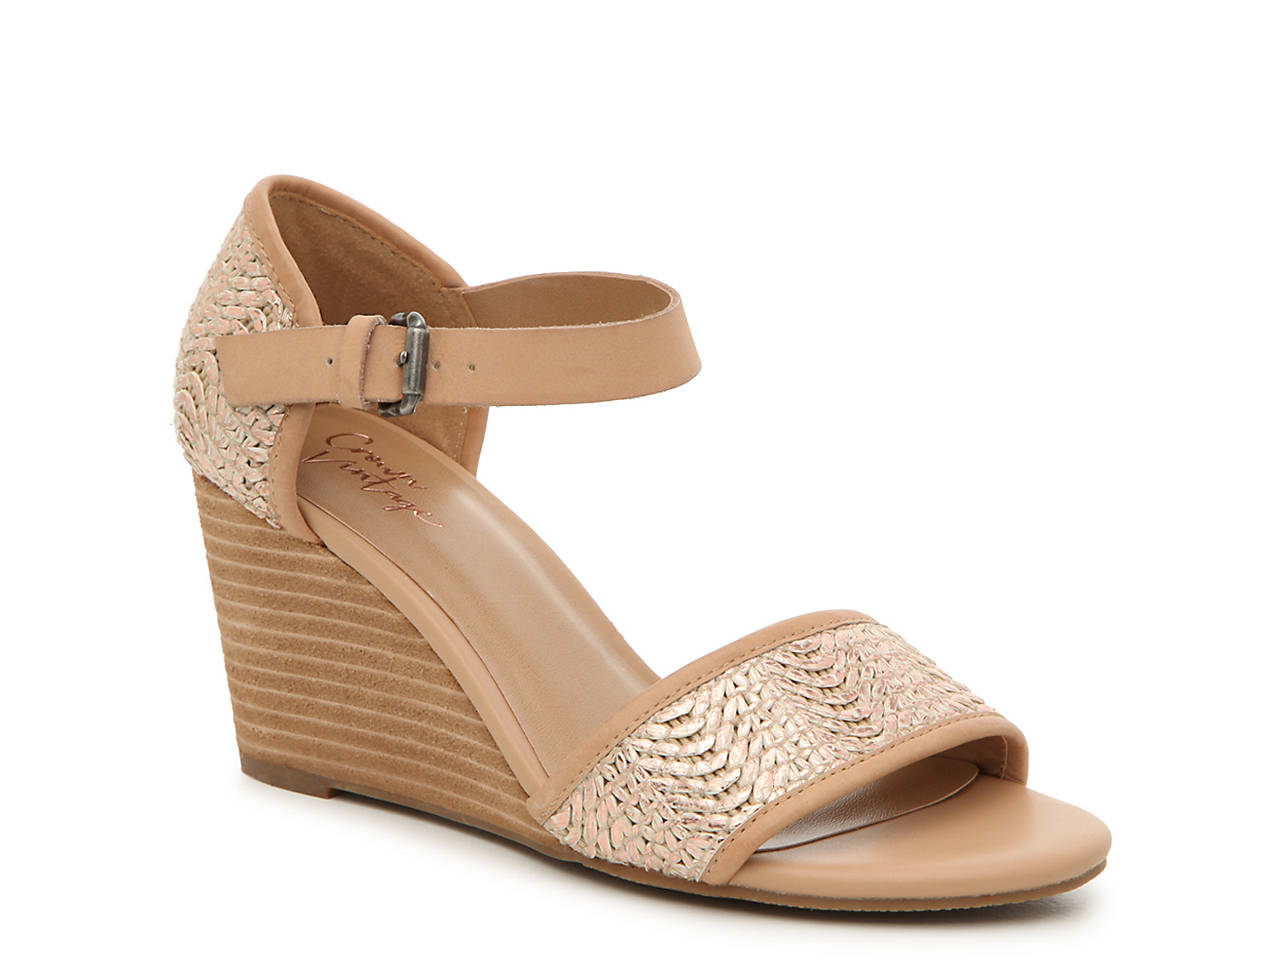 bb765129148 Crown Vintage Courtney Wedge Sandal Women s Shoes